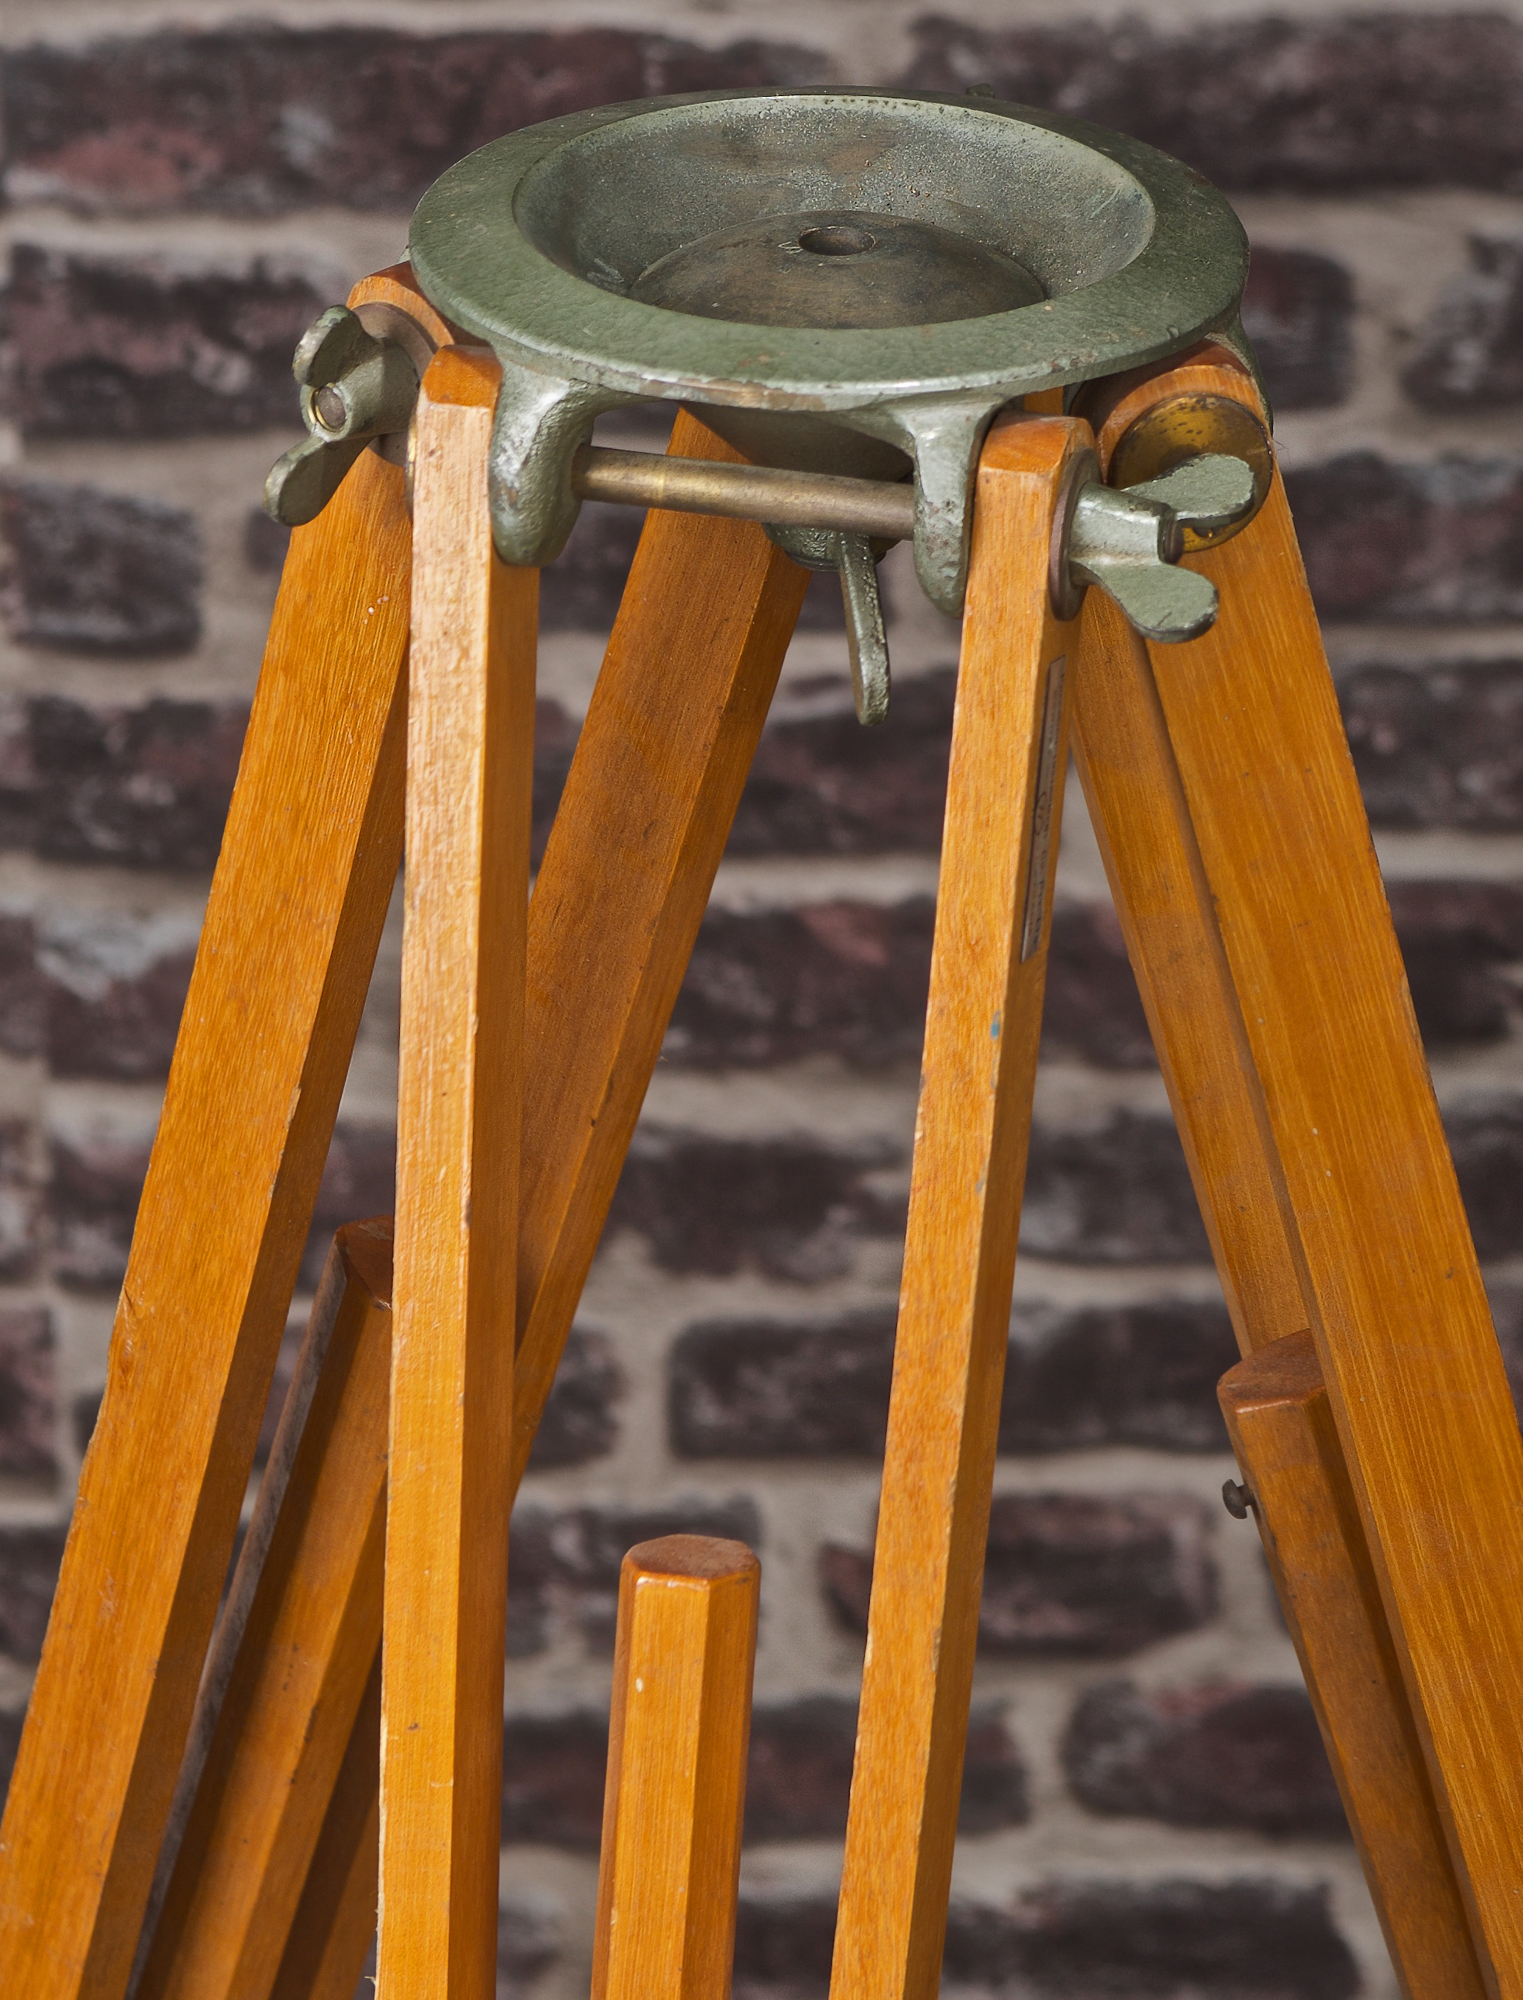 VINTAGE ADJUSTABLE TIMBER WITH DOME HEAD MOUNT TRIPOD